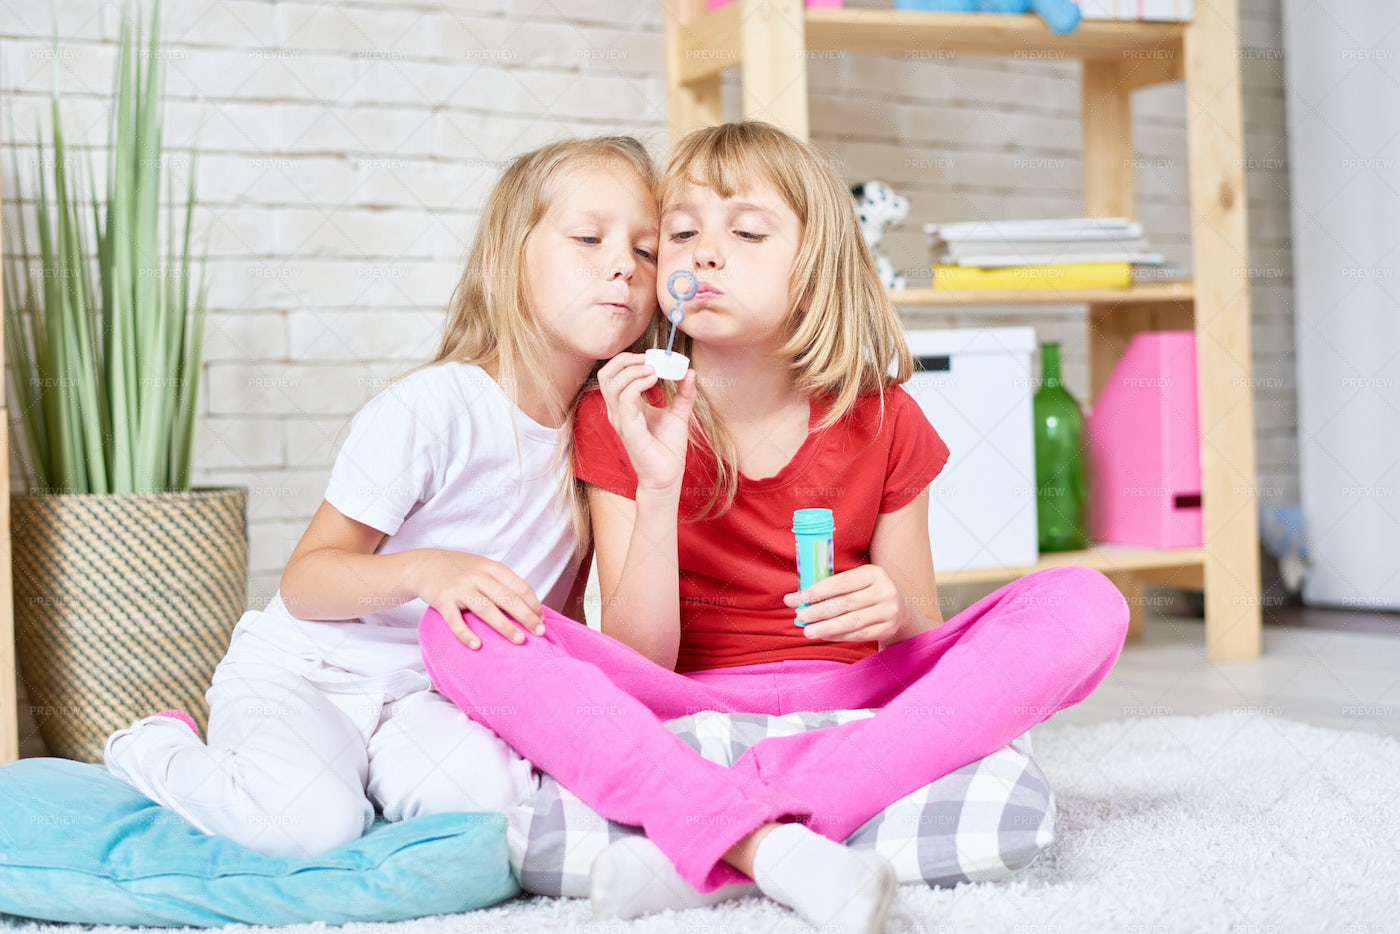 Cute Sisters Blowing Bubbles: Stock Photos